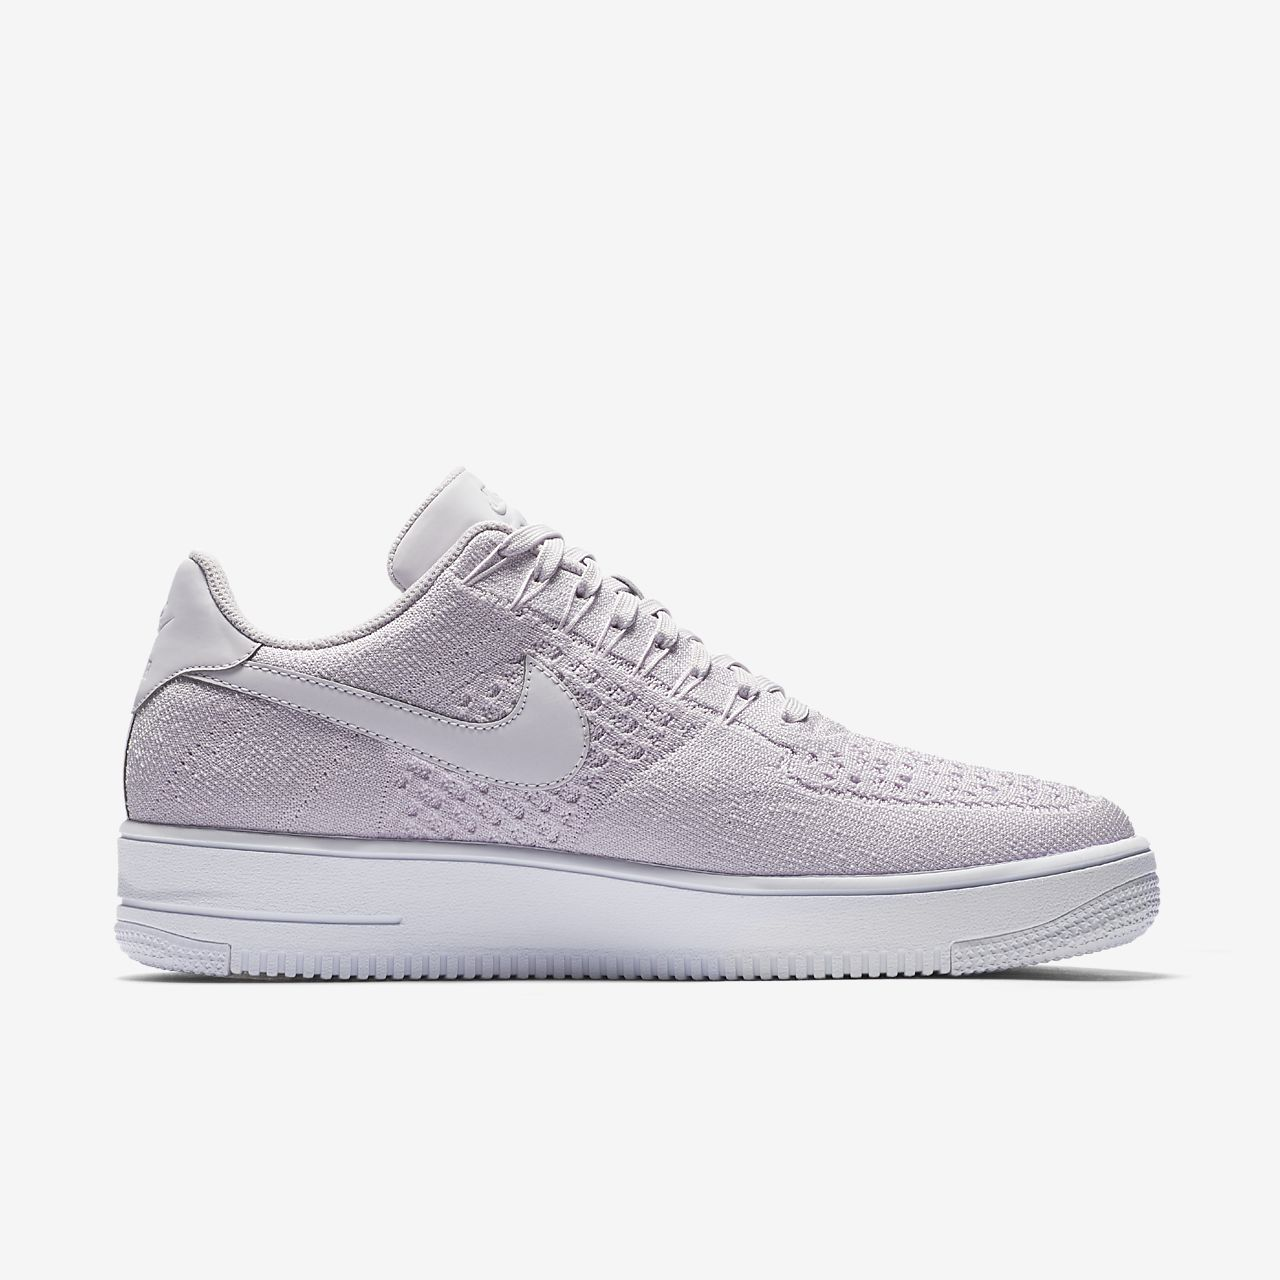 Men's Nike Air Force 1 Low Neutral Grey Sneakers : F31h3333